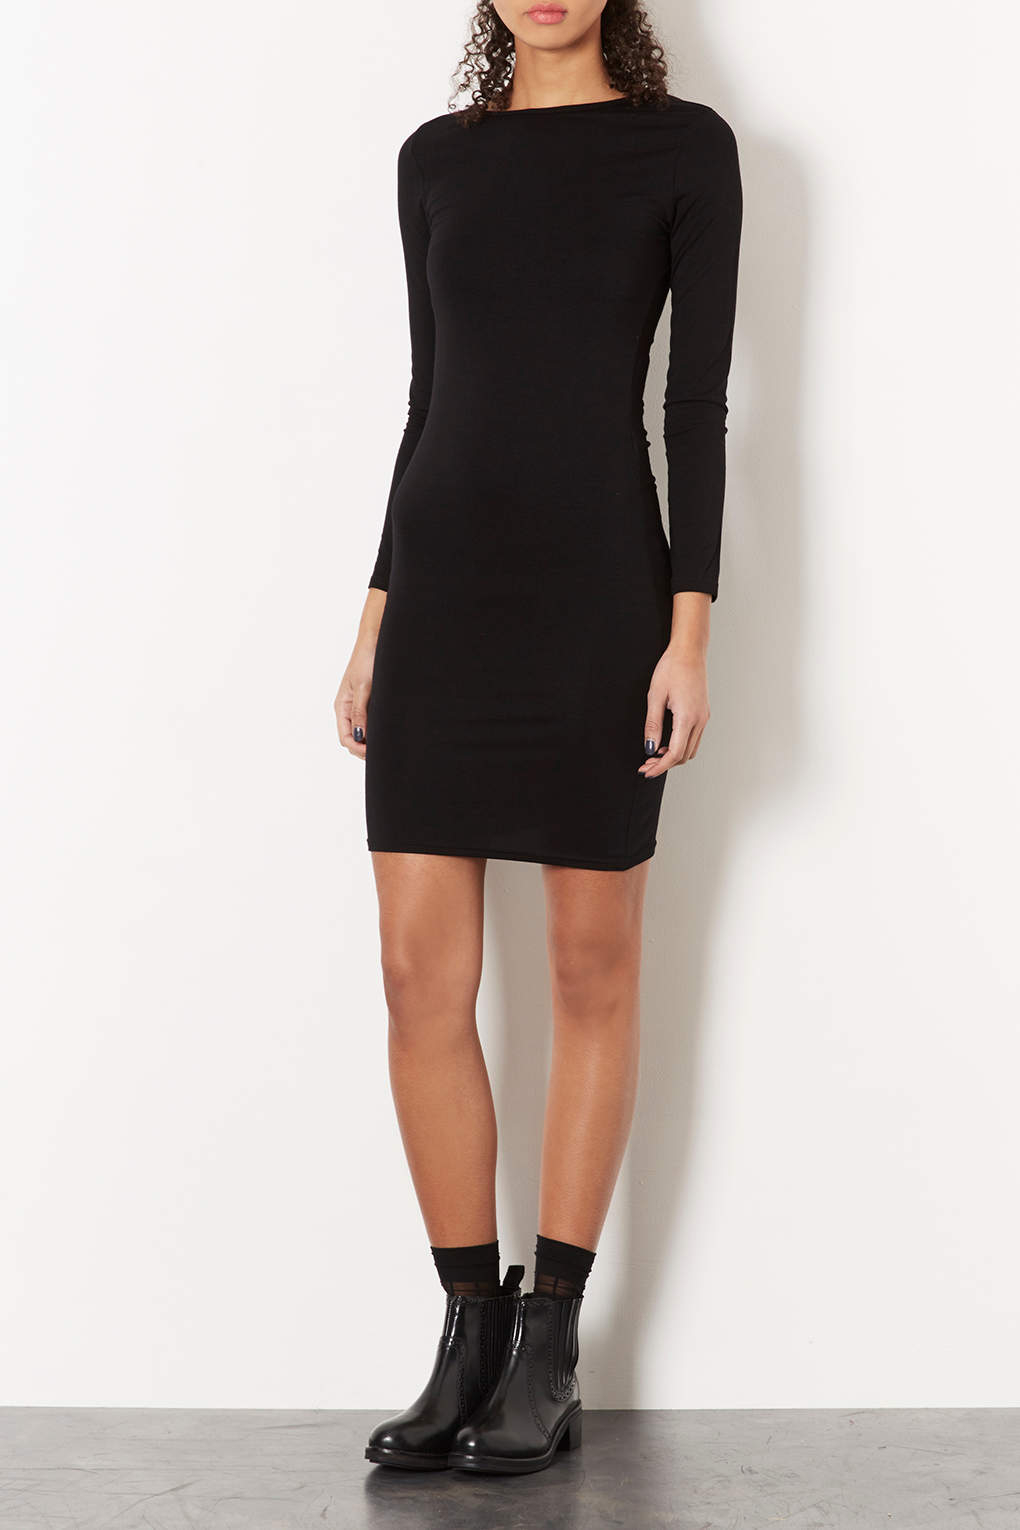 bc5e194a73e Lyst - TOPSHOP Tall Plain Mini Bodycon Dress in Black